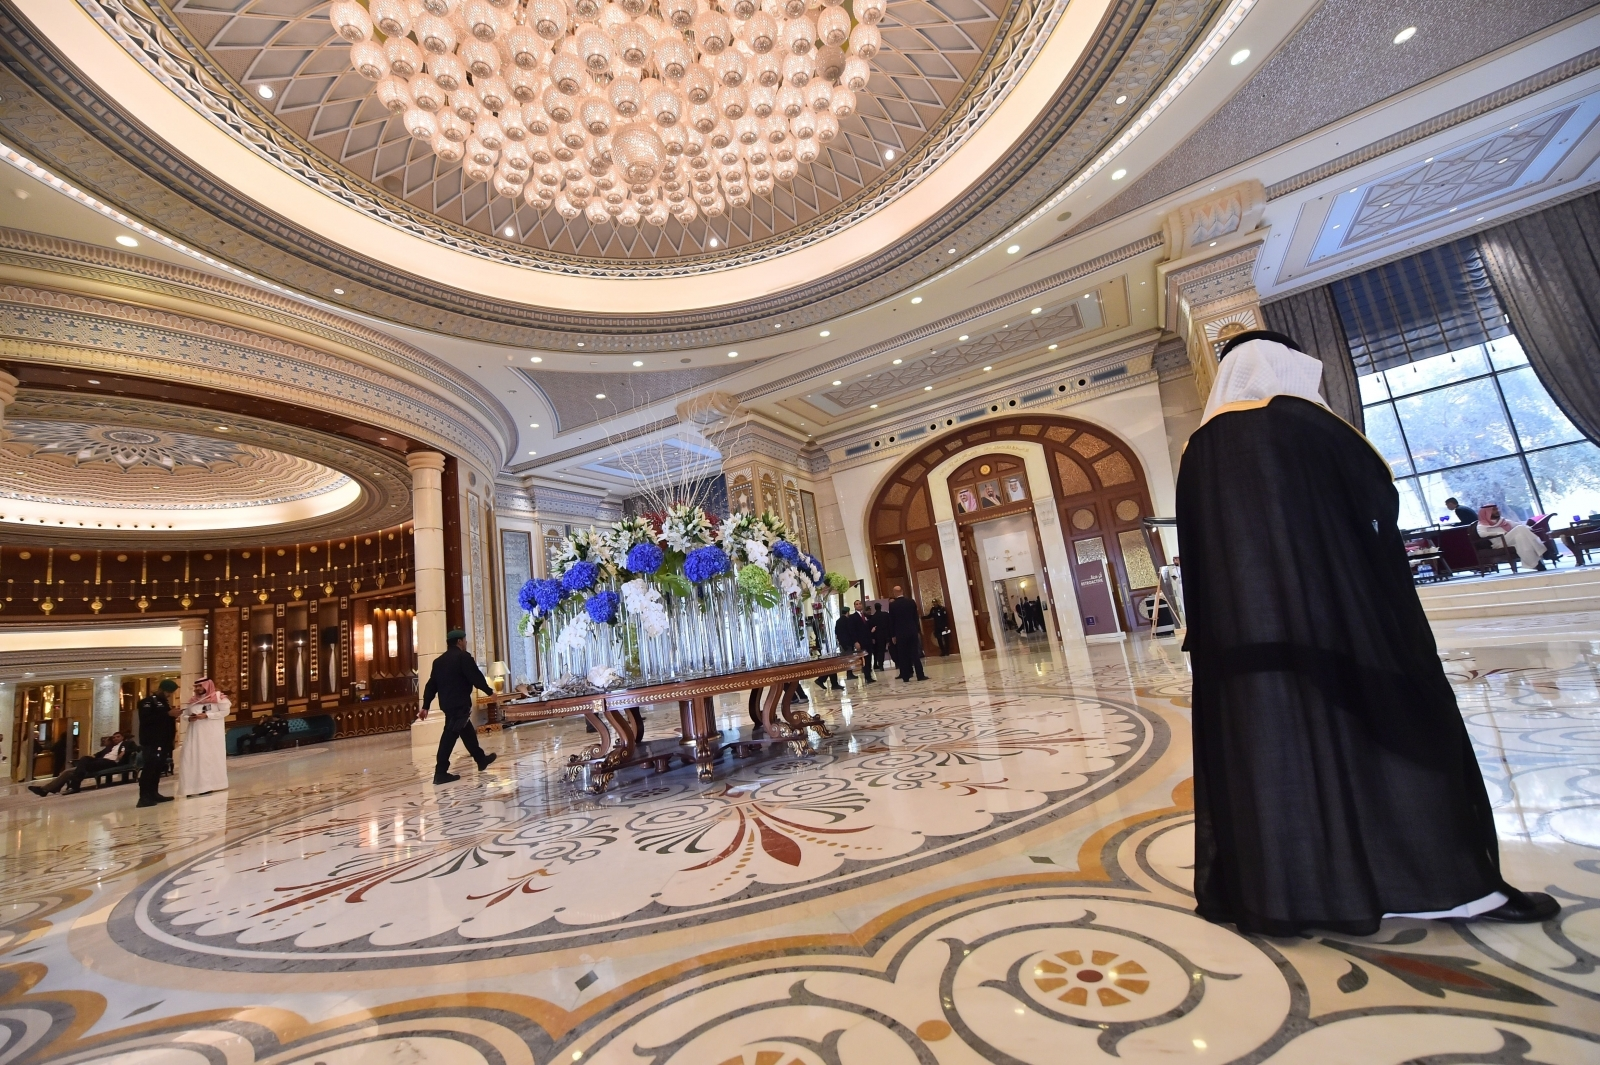 The five-star Ritz-Carlton in Riyadh where dozens of royal figures, ministers and businessmen are detained by Saudi authorities